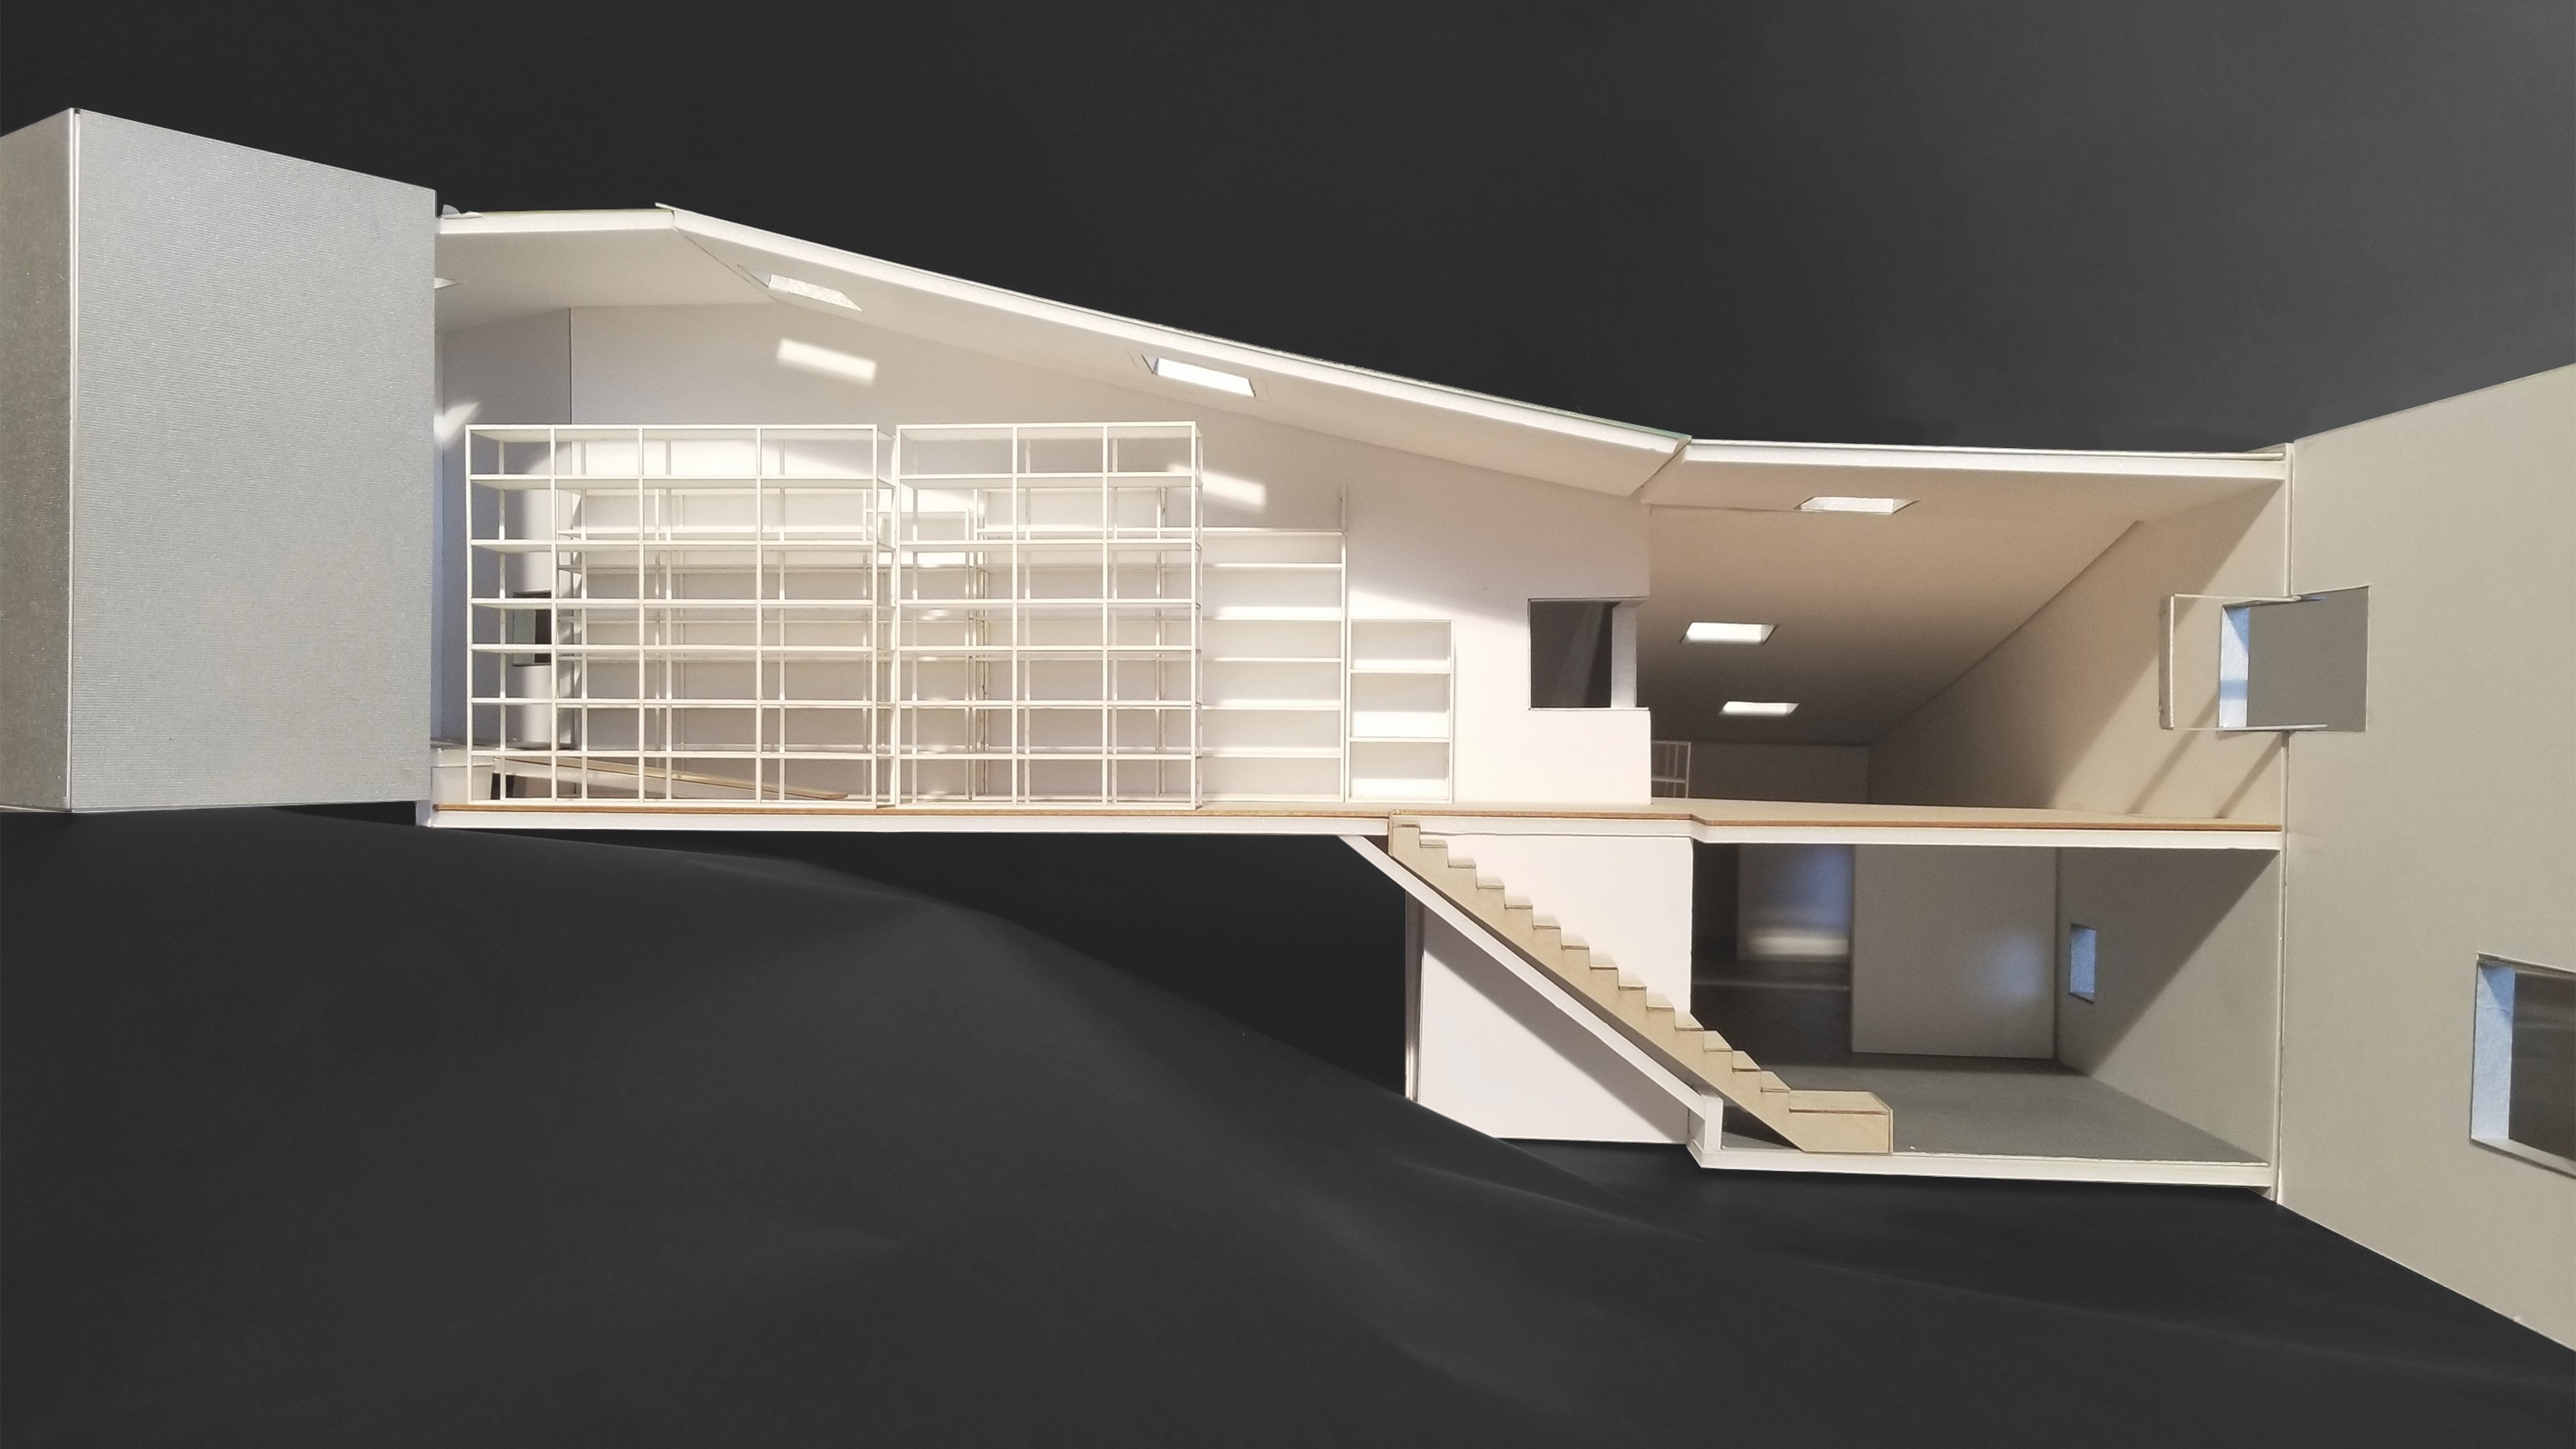 https://stevenholl.sfo2.digitaloceanspaces.com/uploads/projects/project-images/section view_horizontal.jpg